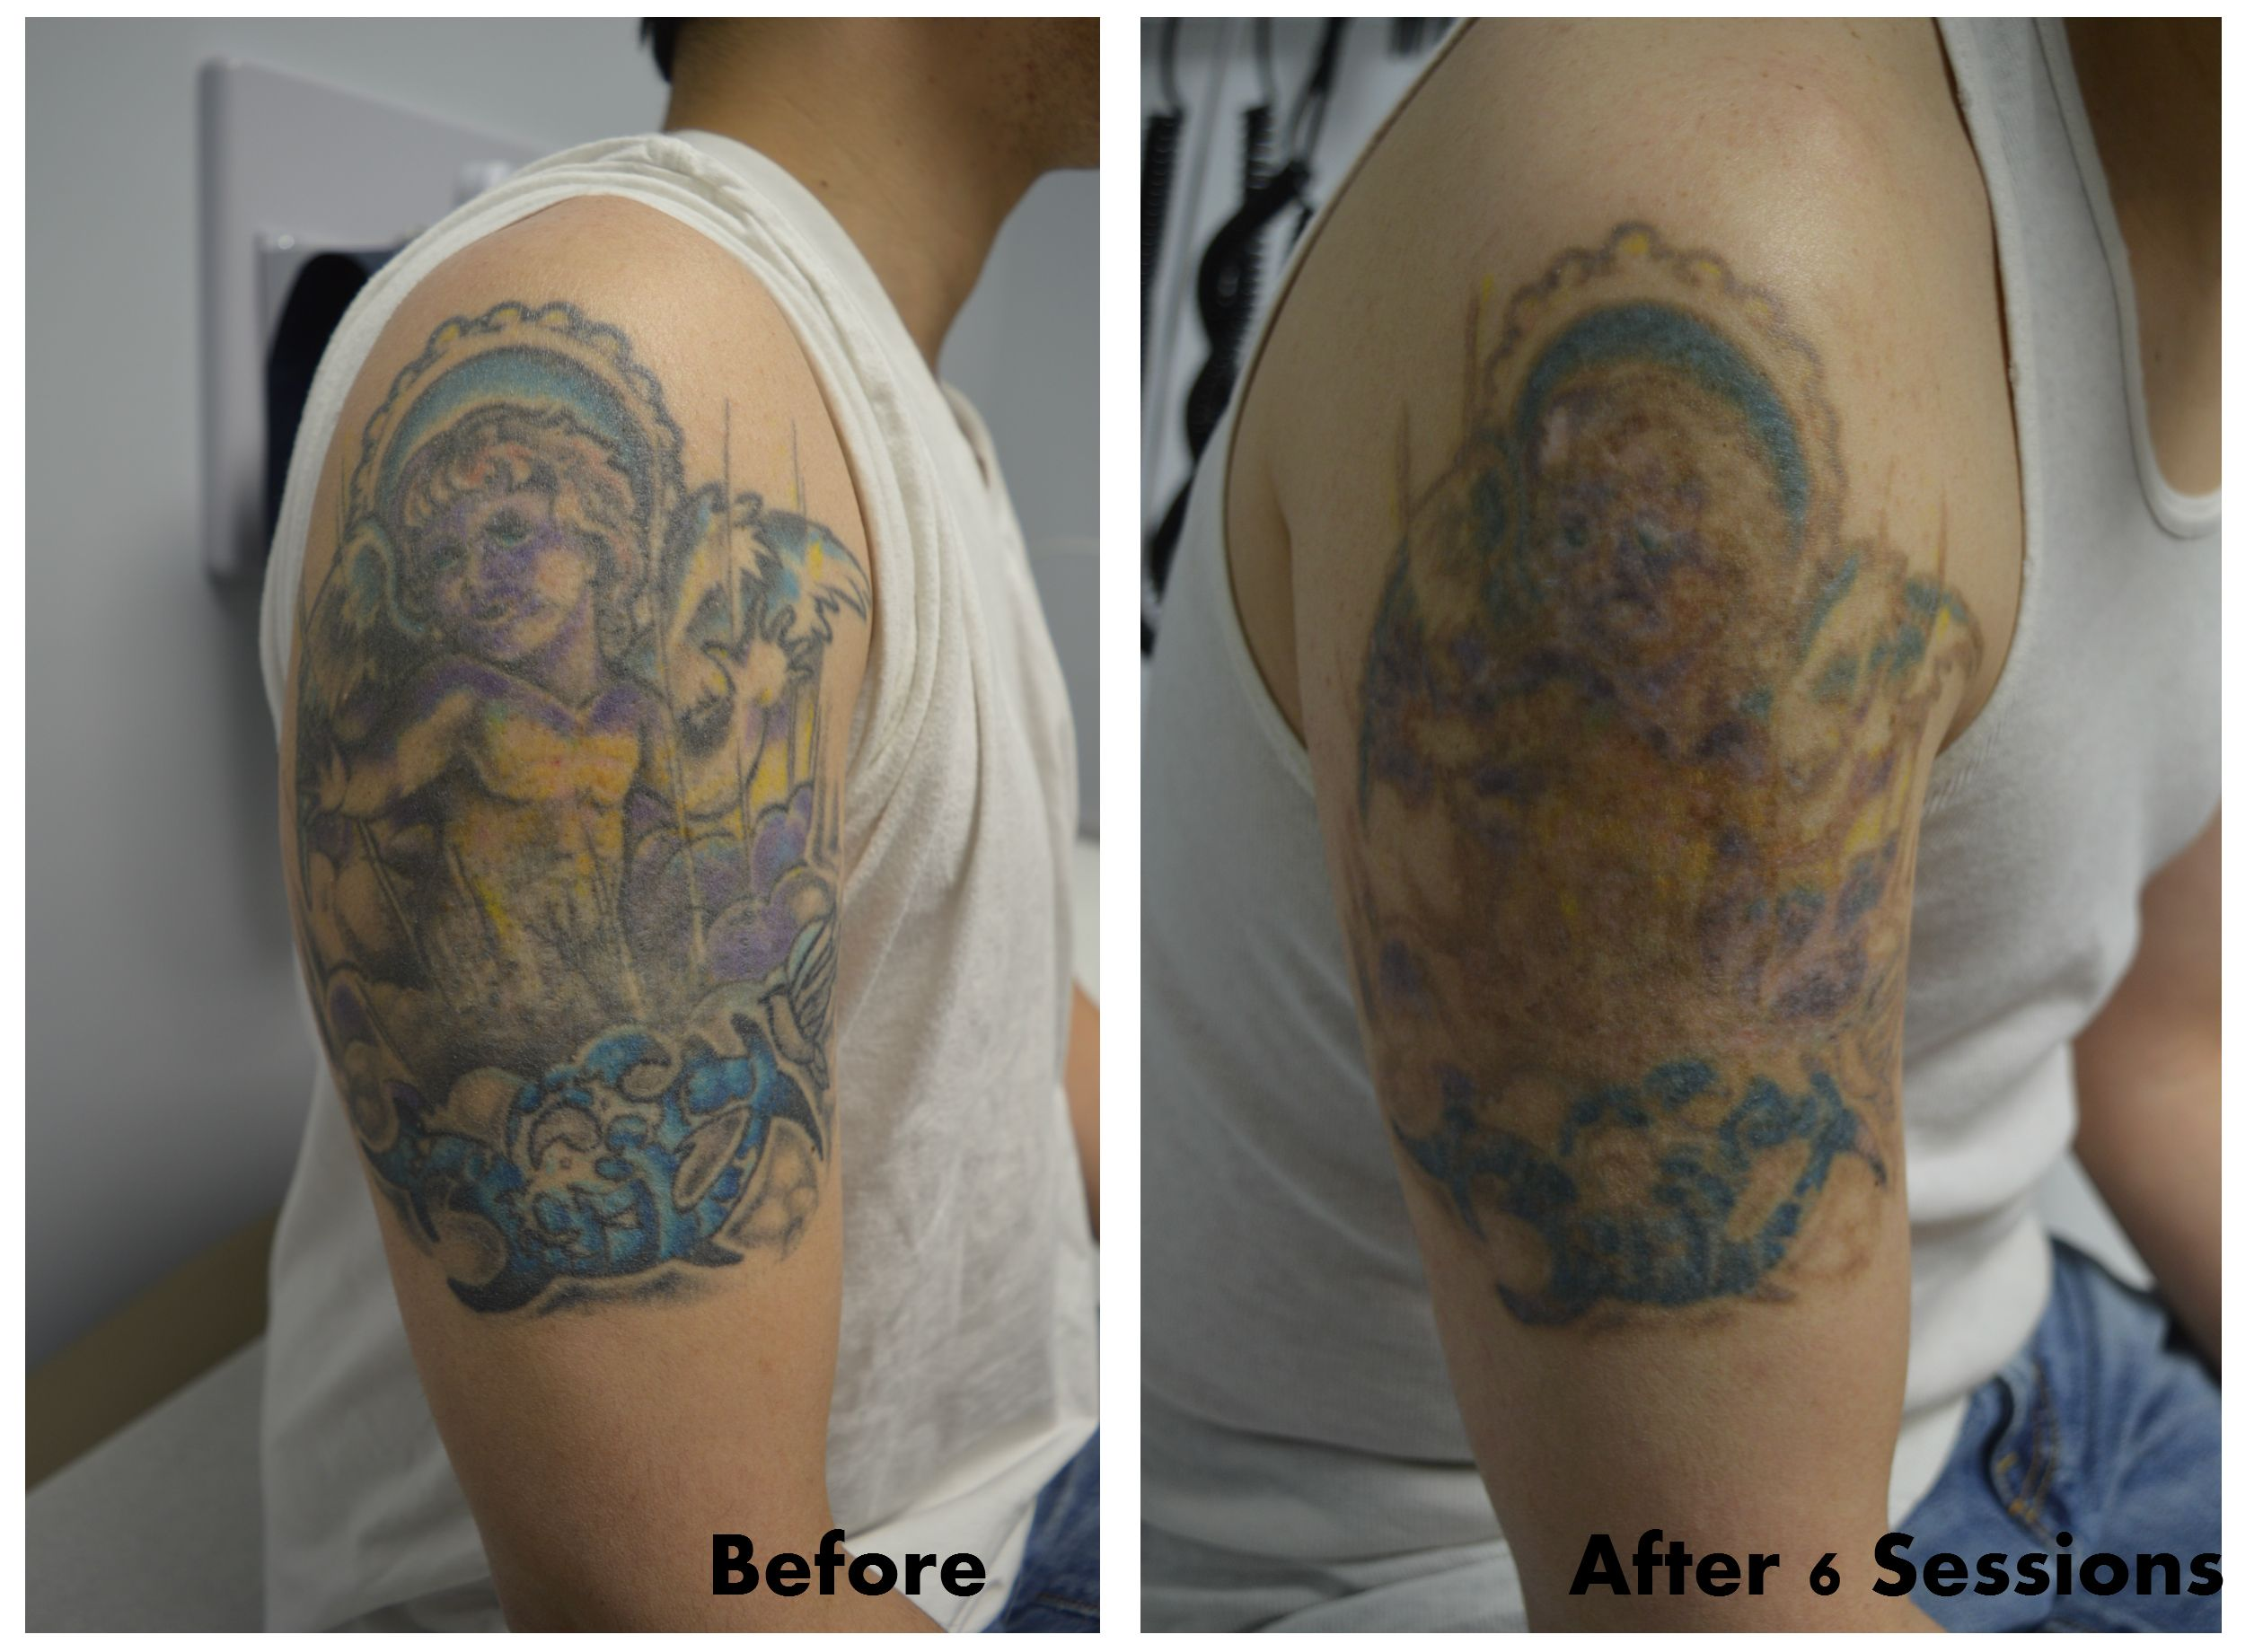 Full color tattoo removal after 6 sessions look at that